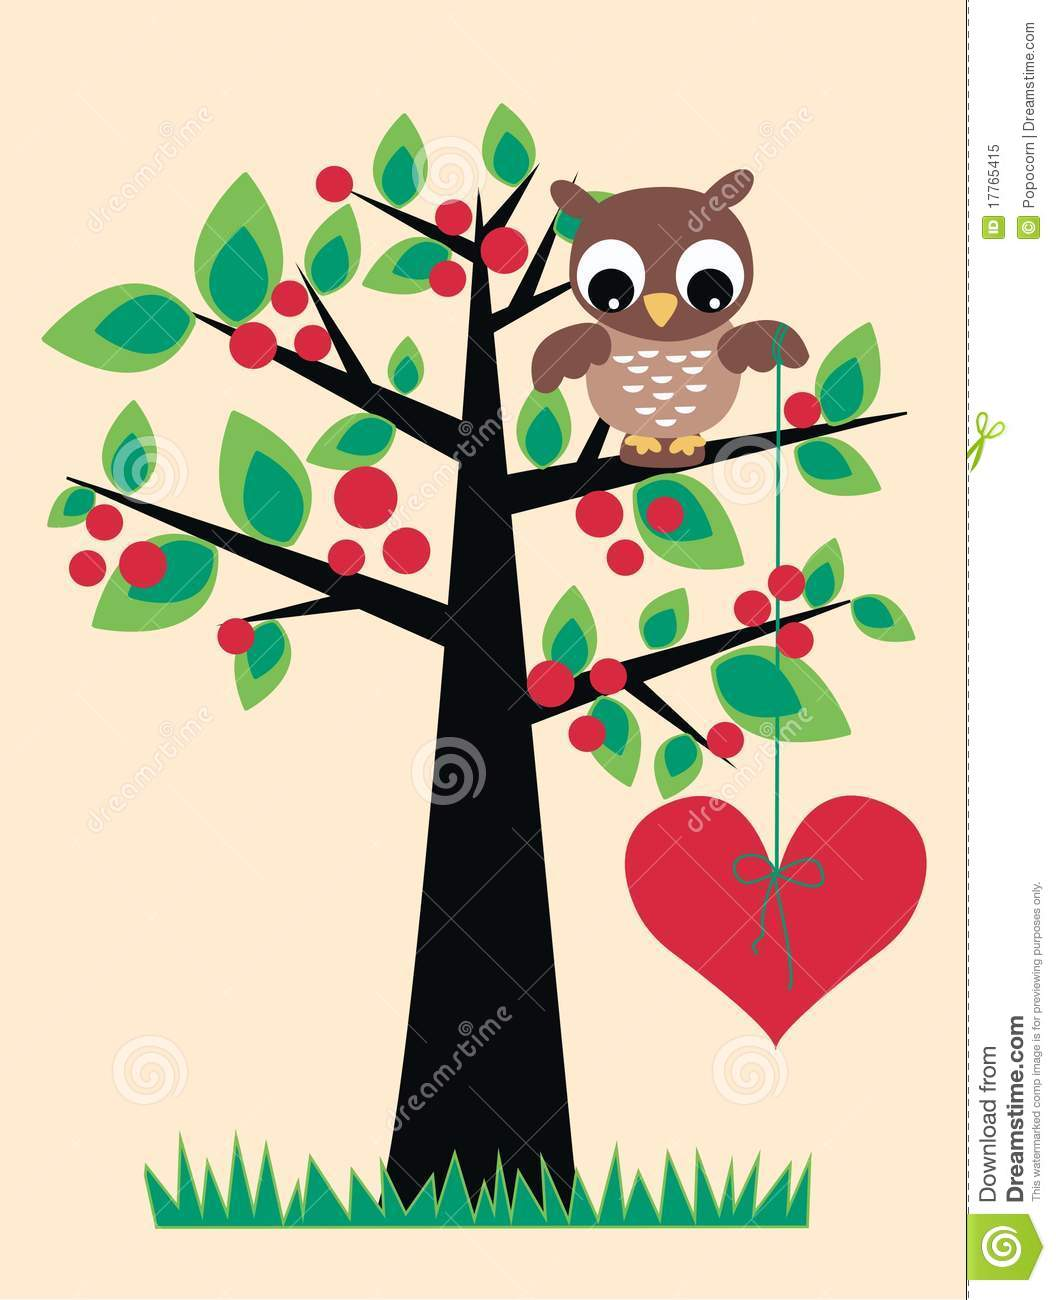 Tree And Owl Wall Stickers A Cute Owl Sitting In A Tree Stock Vector Image 17765415